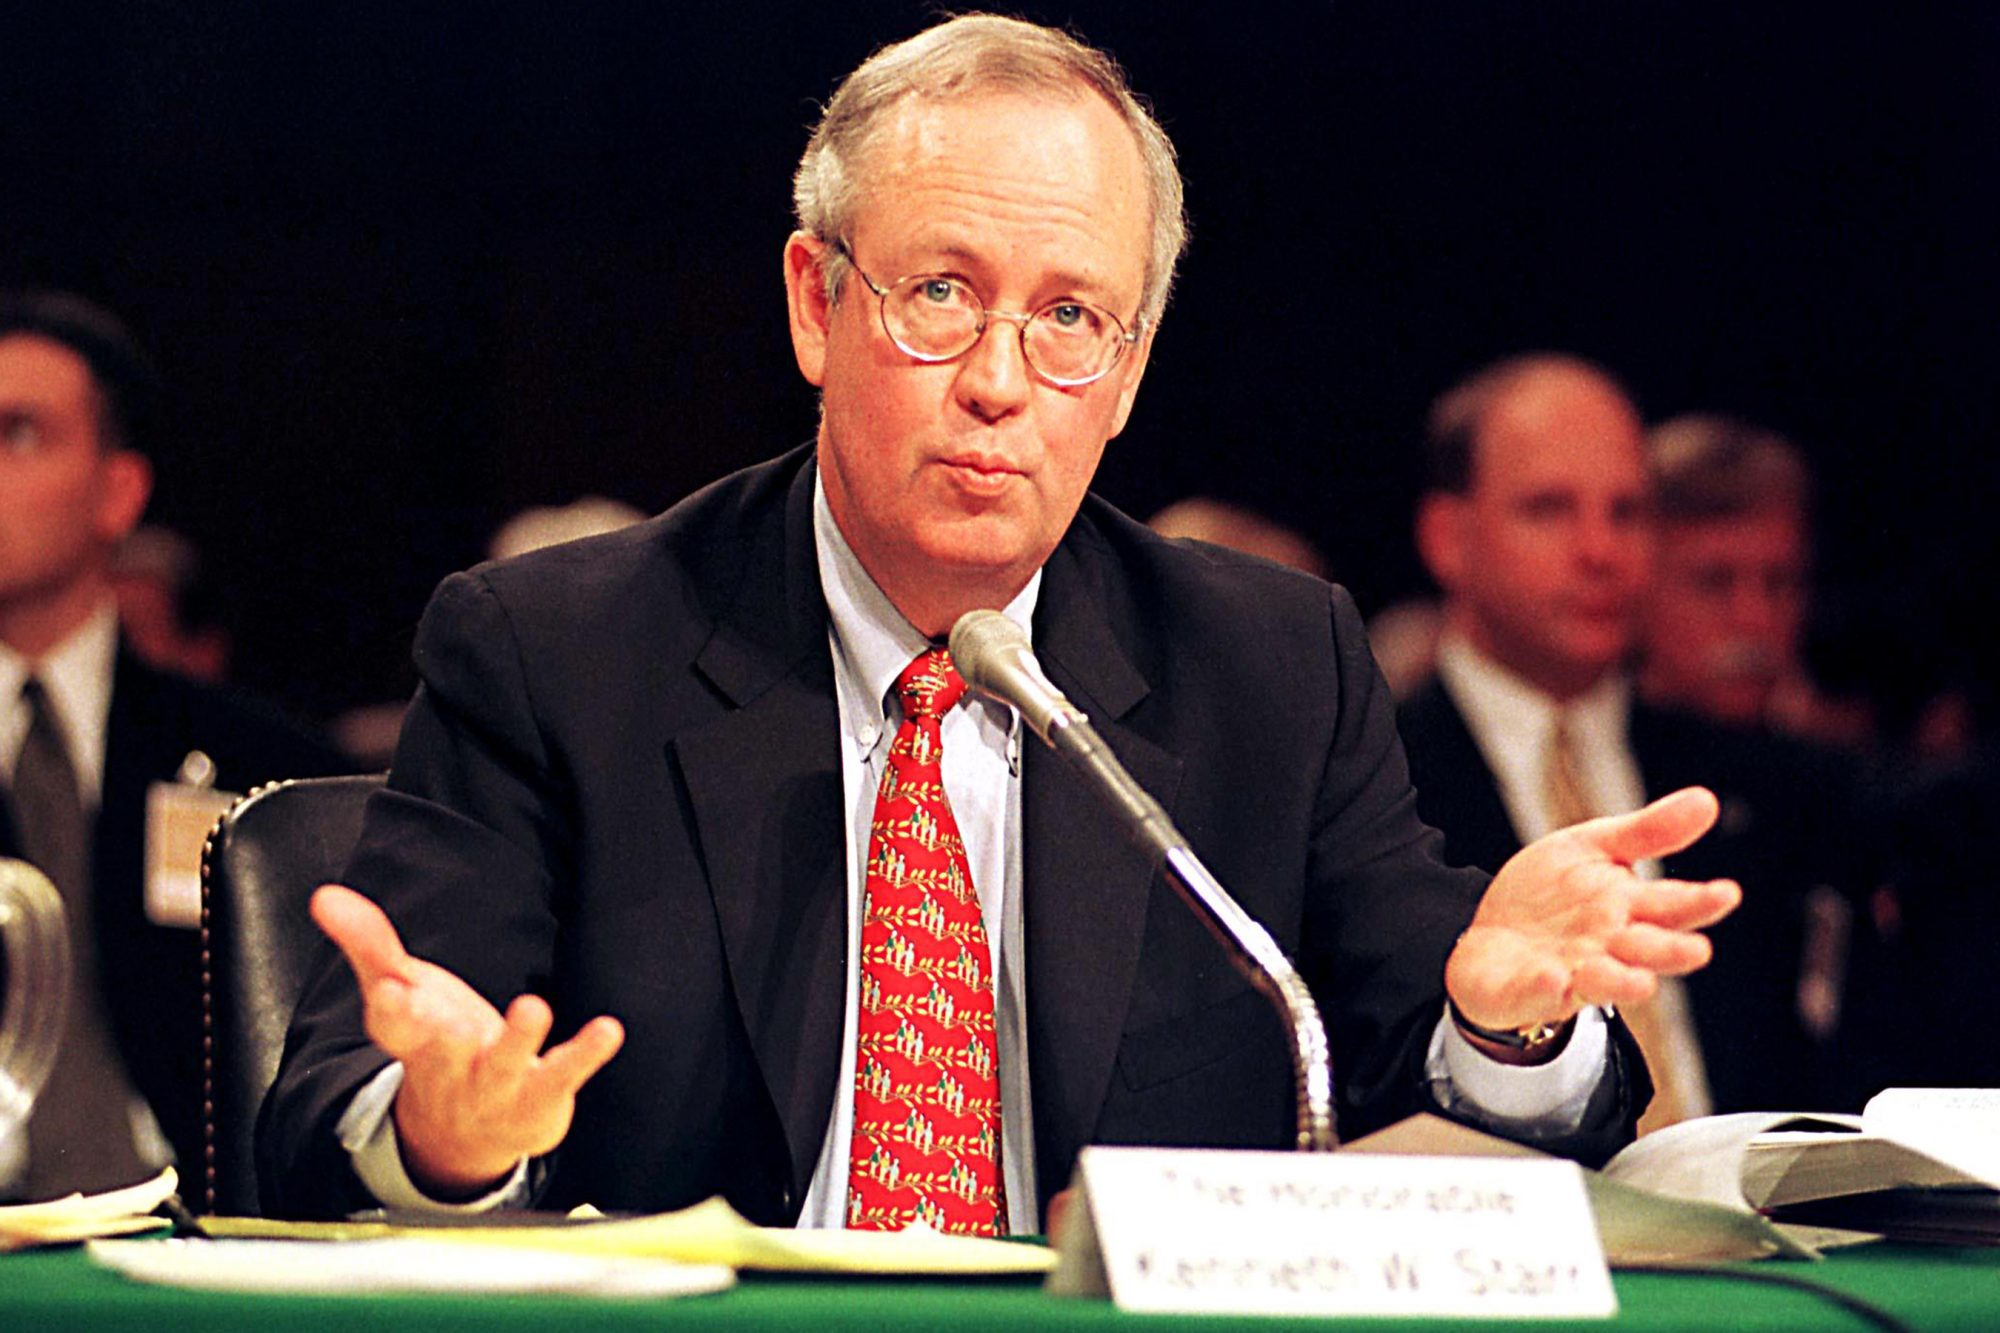 KENNETH W STARR, WHITEWATER INDEPENDENT COUNSEL, TESTIFIES BEFORE THE U.S. SENATE COMMITTEE ON GOVERNMENTAL AFFAIRS, WASHINGTON, AMERICA - 1999